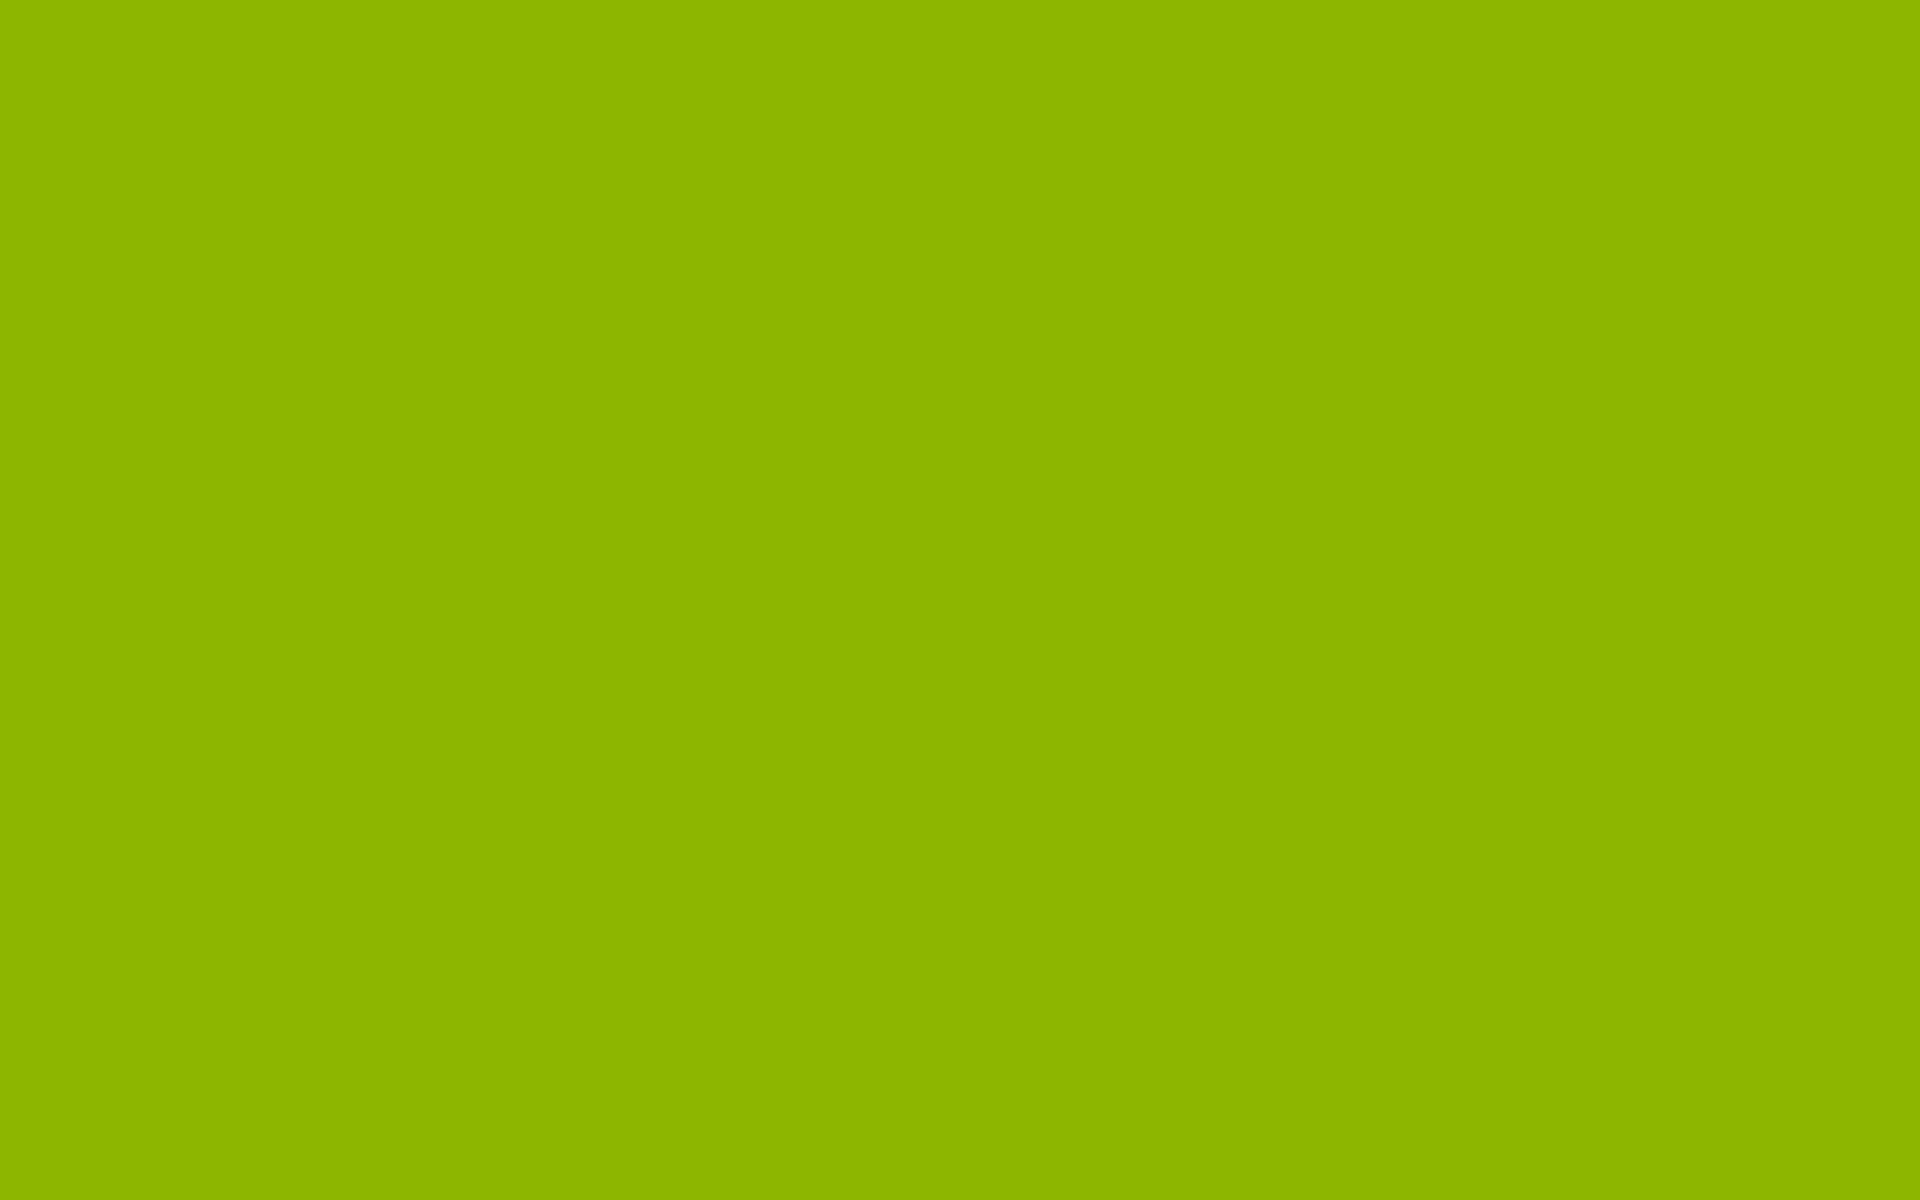 apple green color background the image